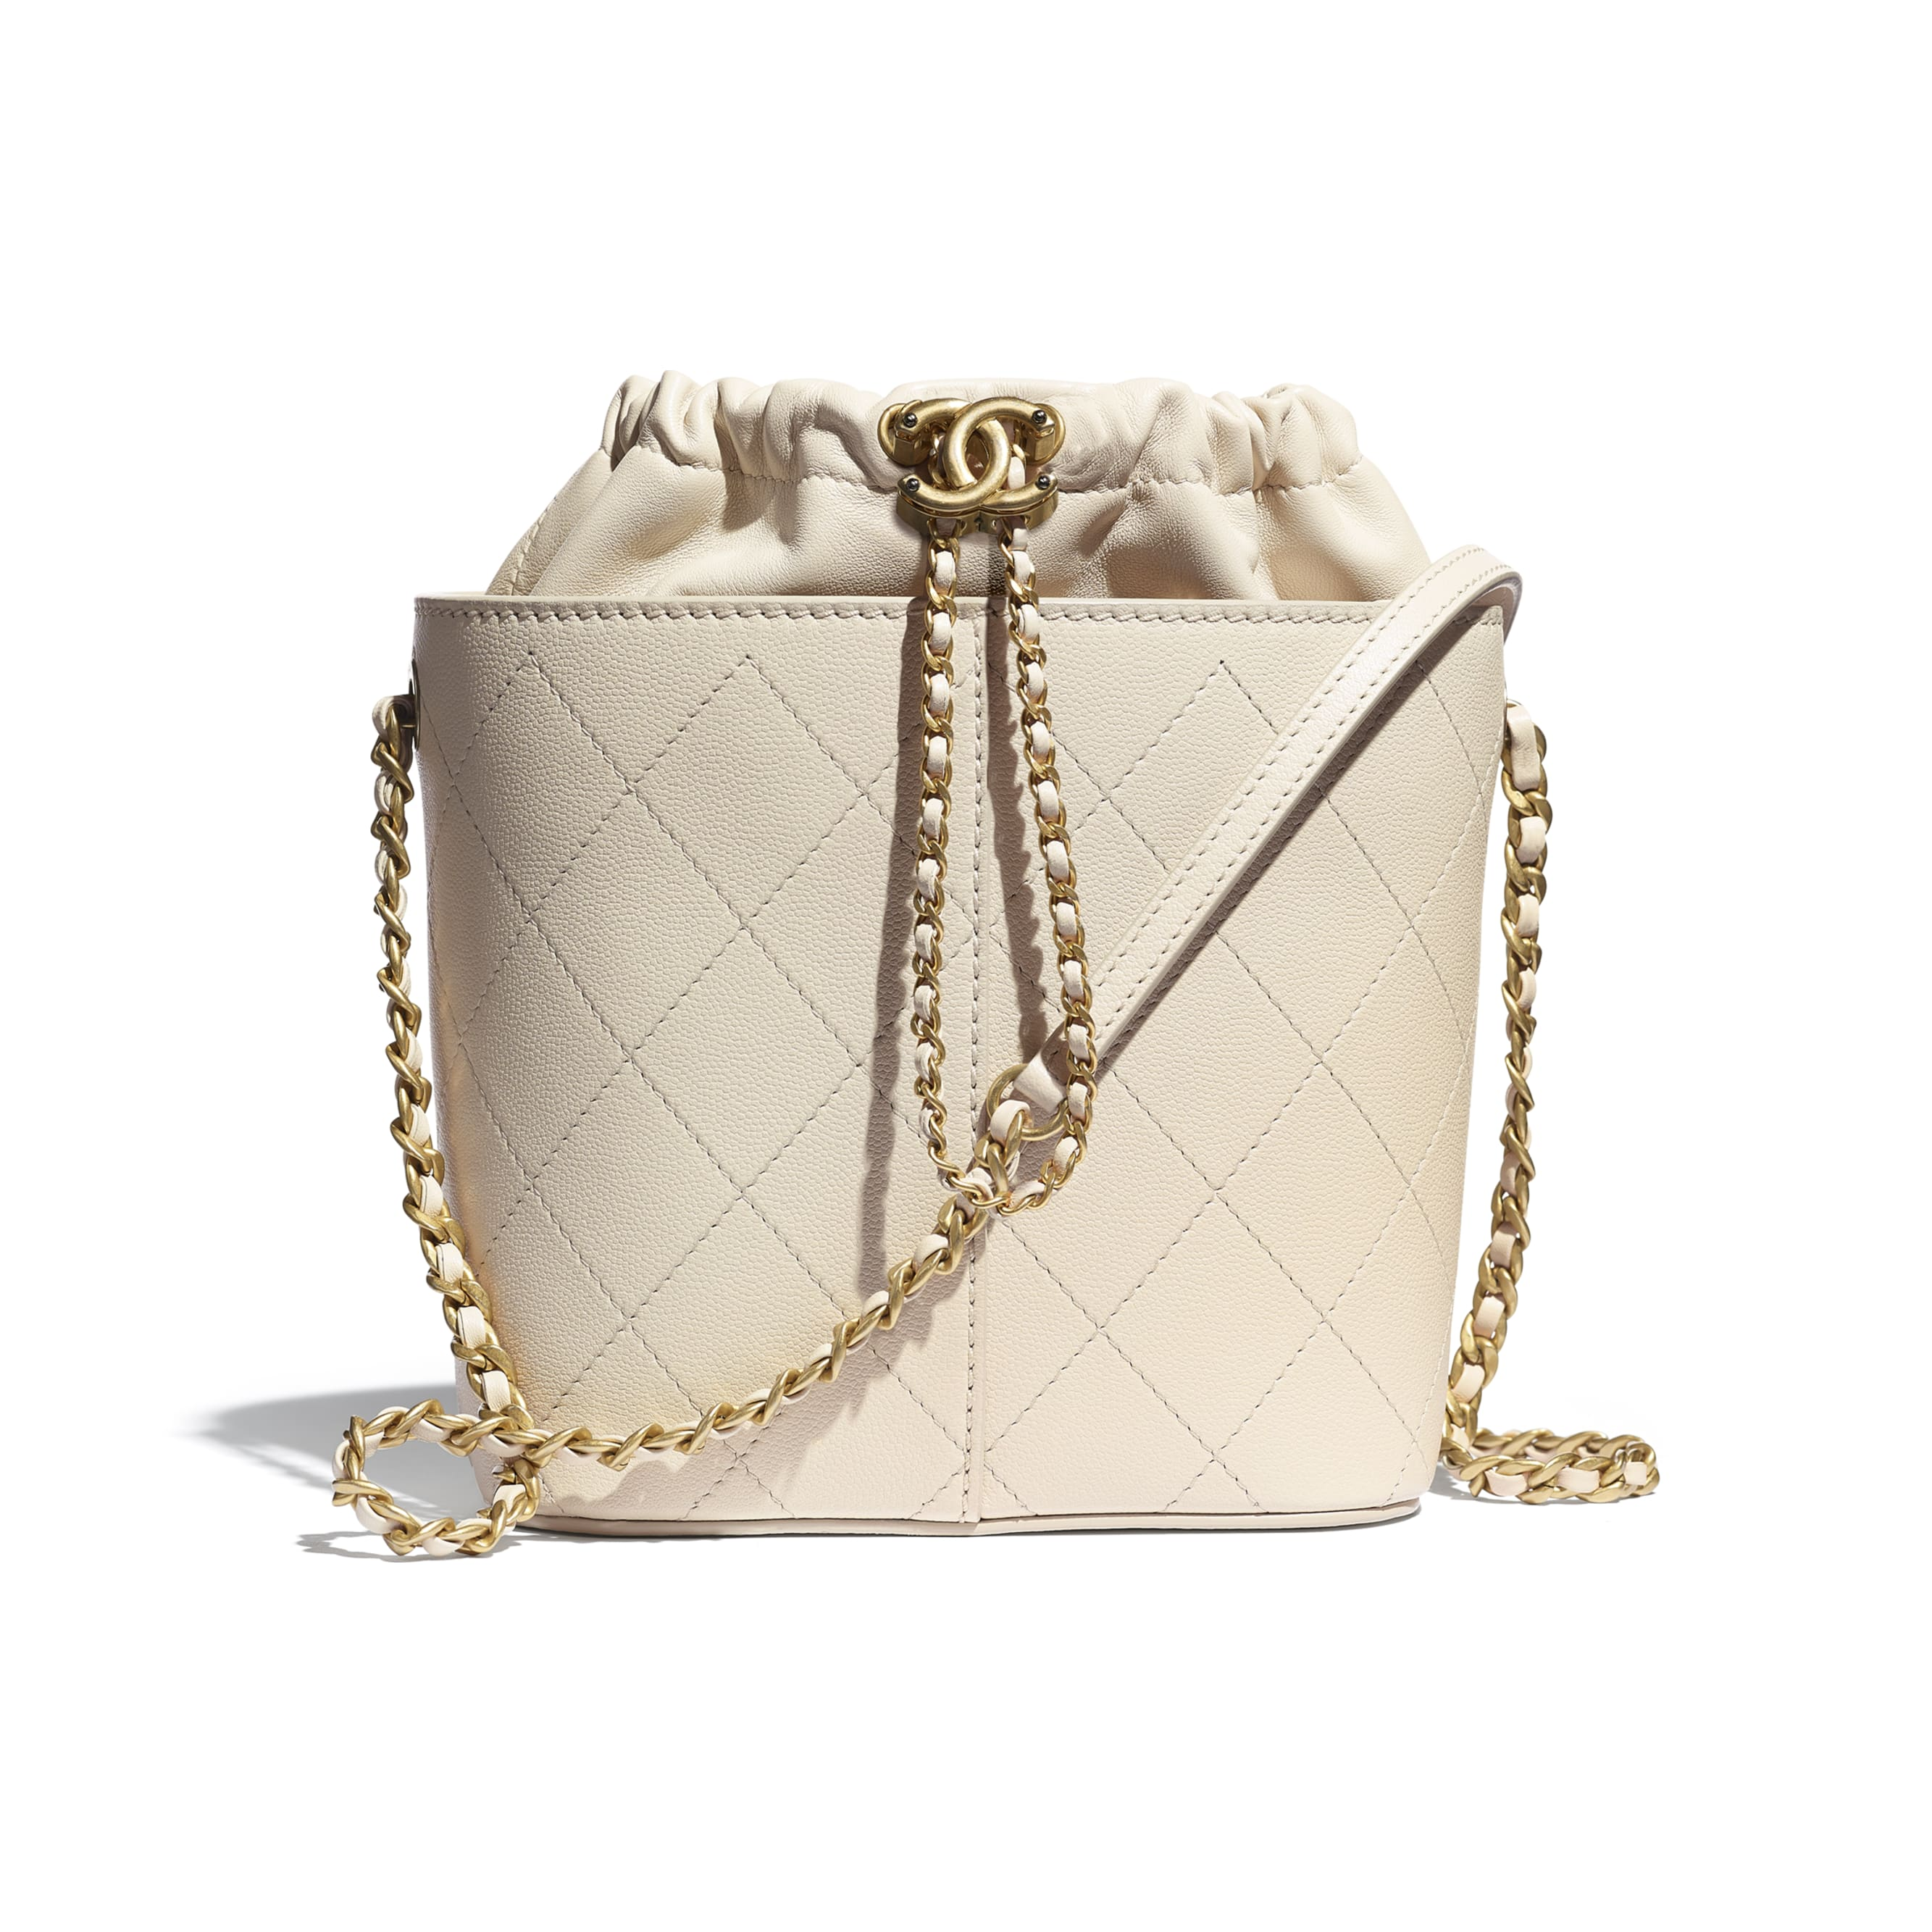 Drawstring Bag - Beige - Grained Lambskin, Smooth Lambskin & Gold-Tone Metal - CHANEL - Default view - see standard sized version